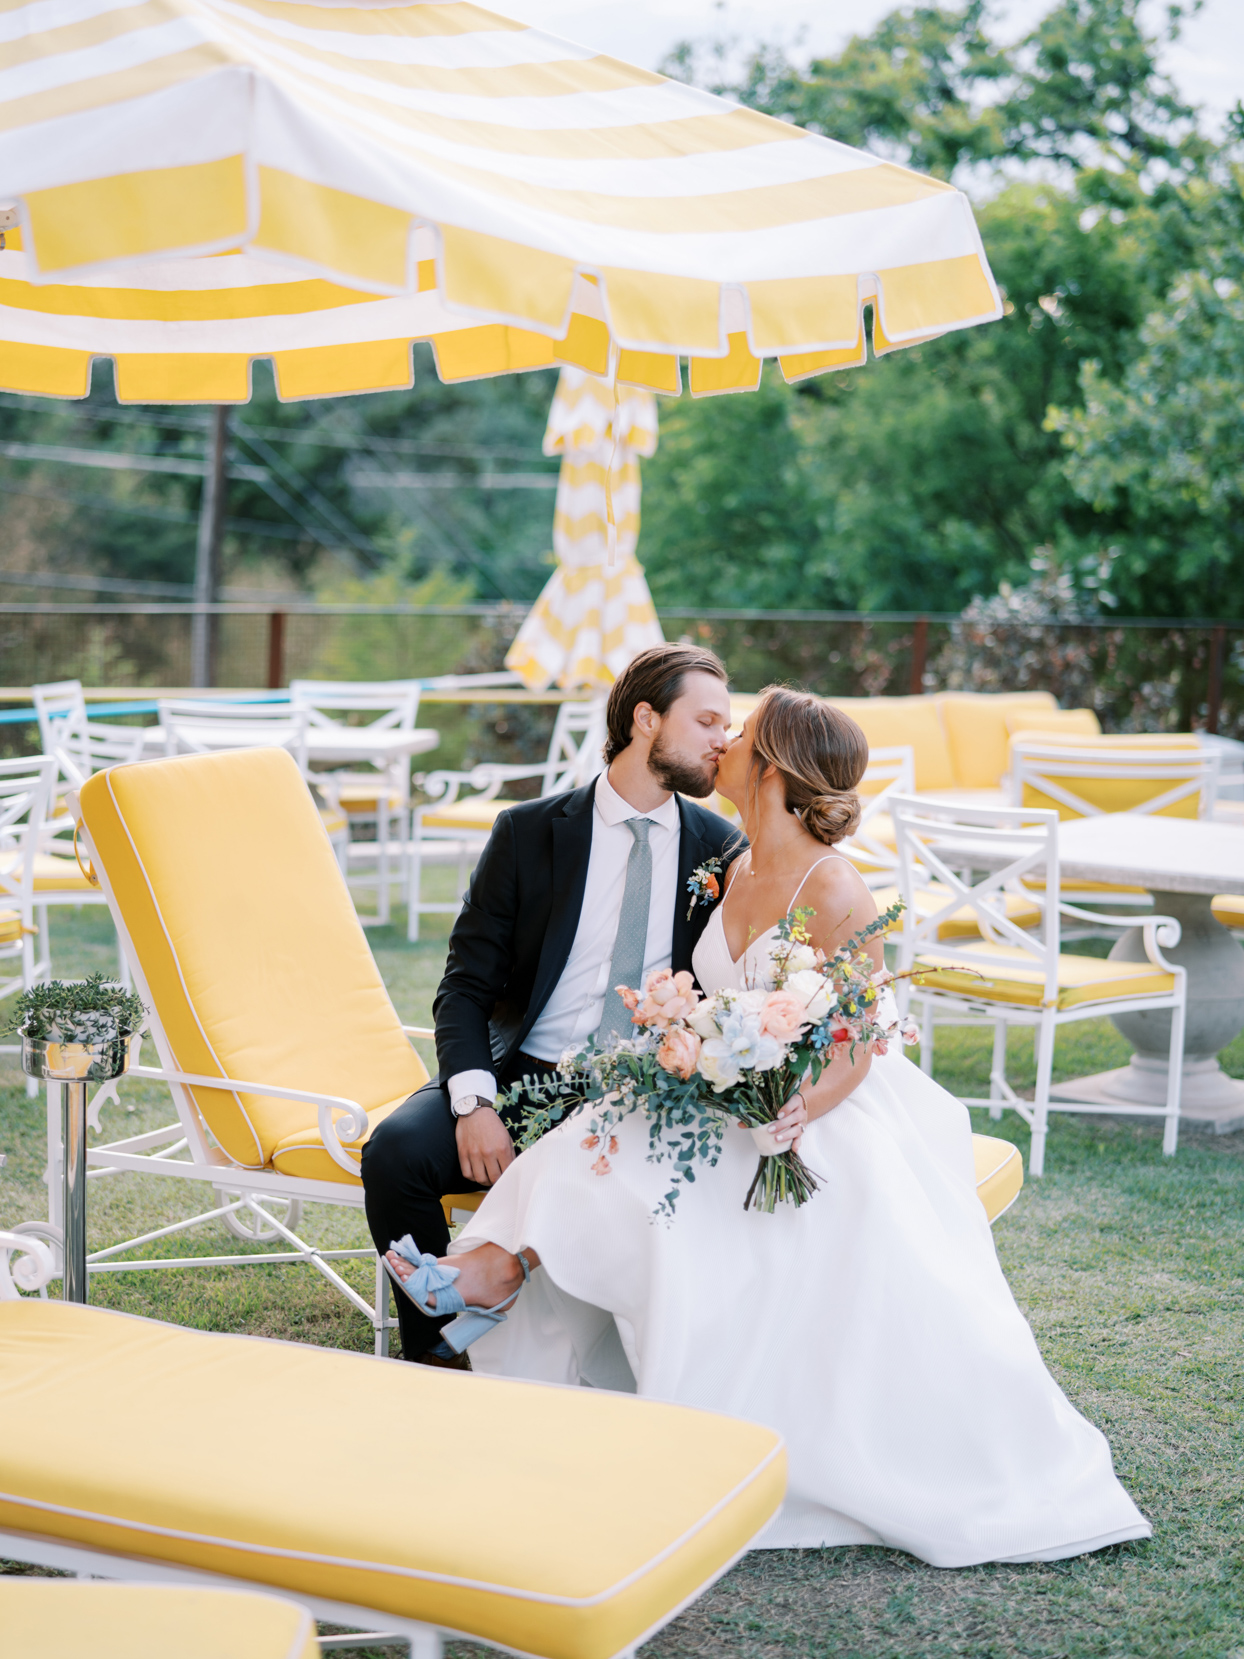 couple kissing on yellow patio lounge chairs